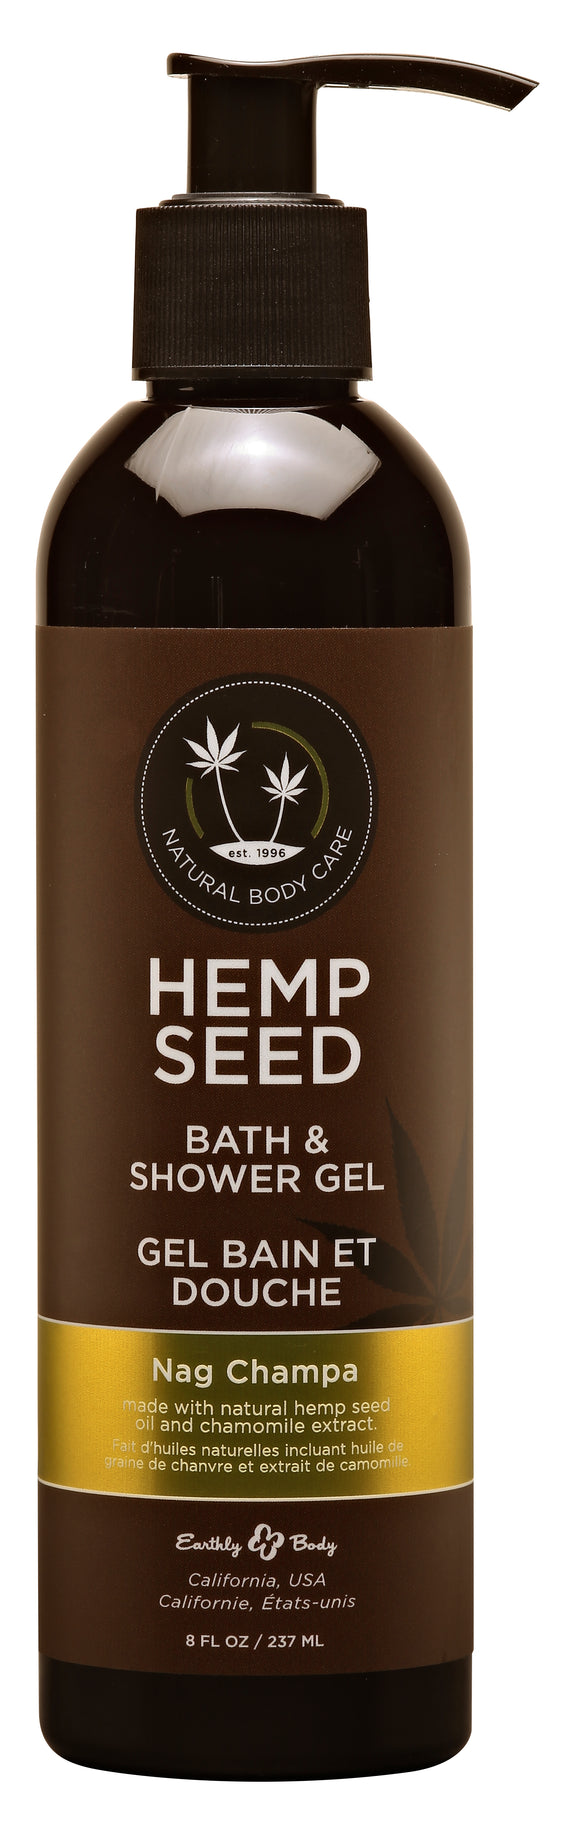 Hemp Seed Bath and Shower Gel - Nag Champa - 8 Oz./ 237 ml EB-SG020